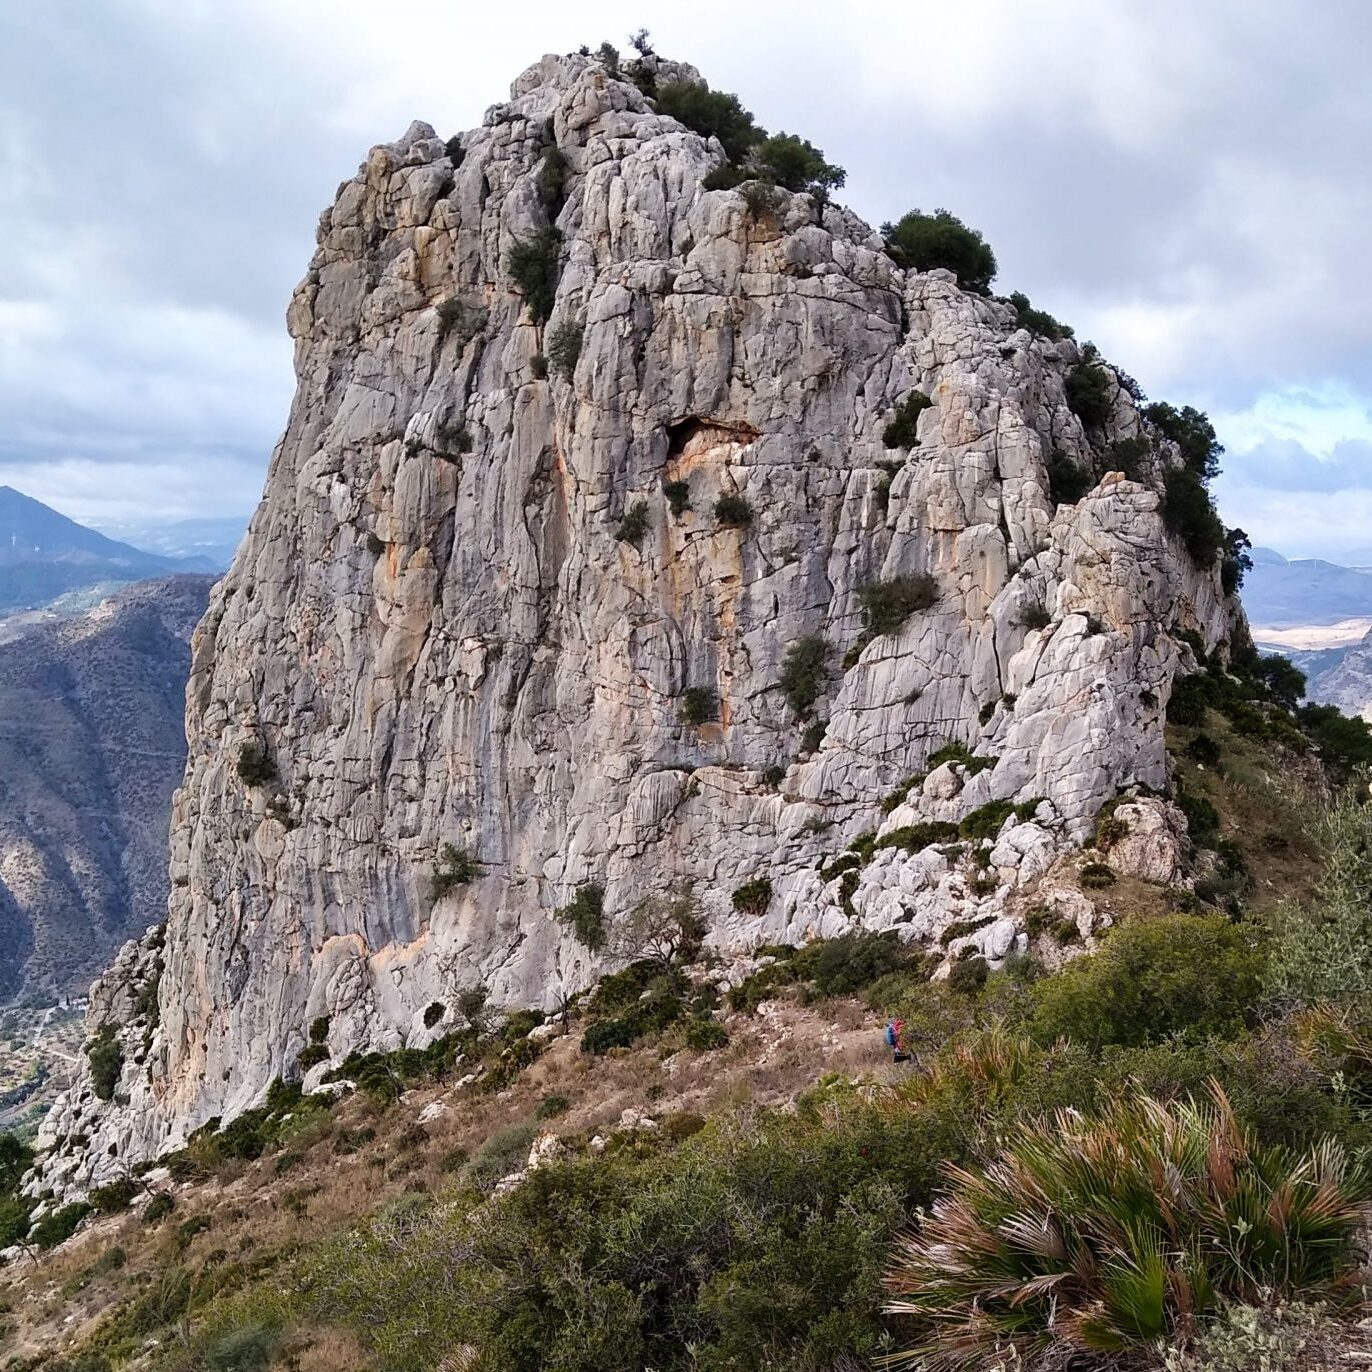 Romsey Climbers - Coral East, El Chorro, multipitch sport climbing